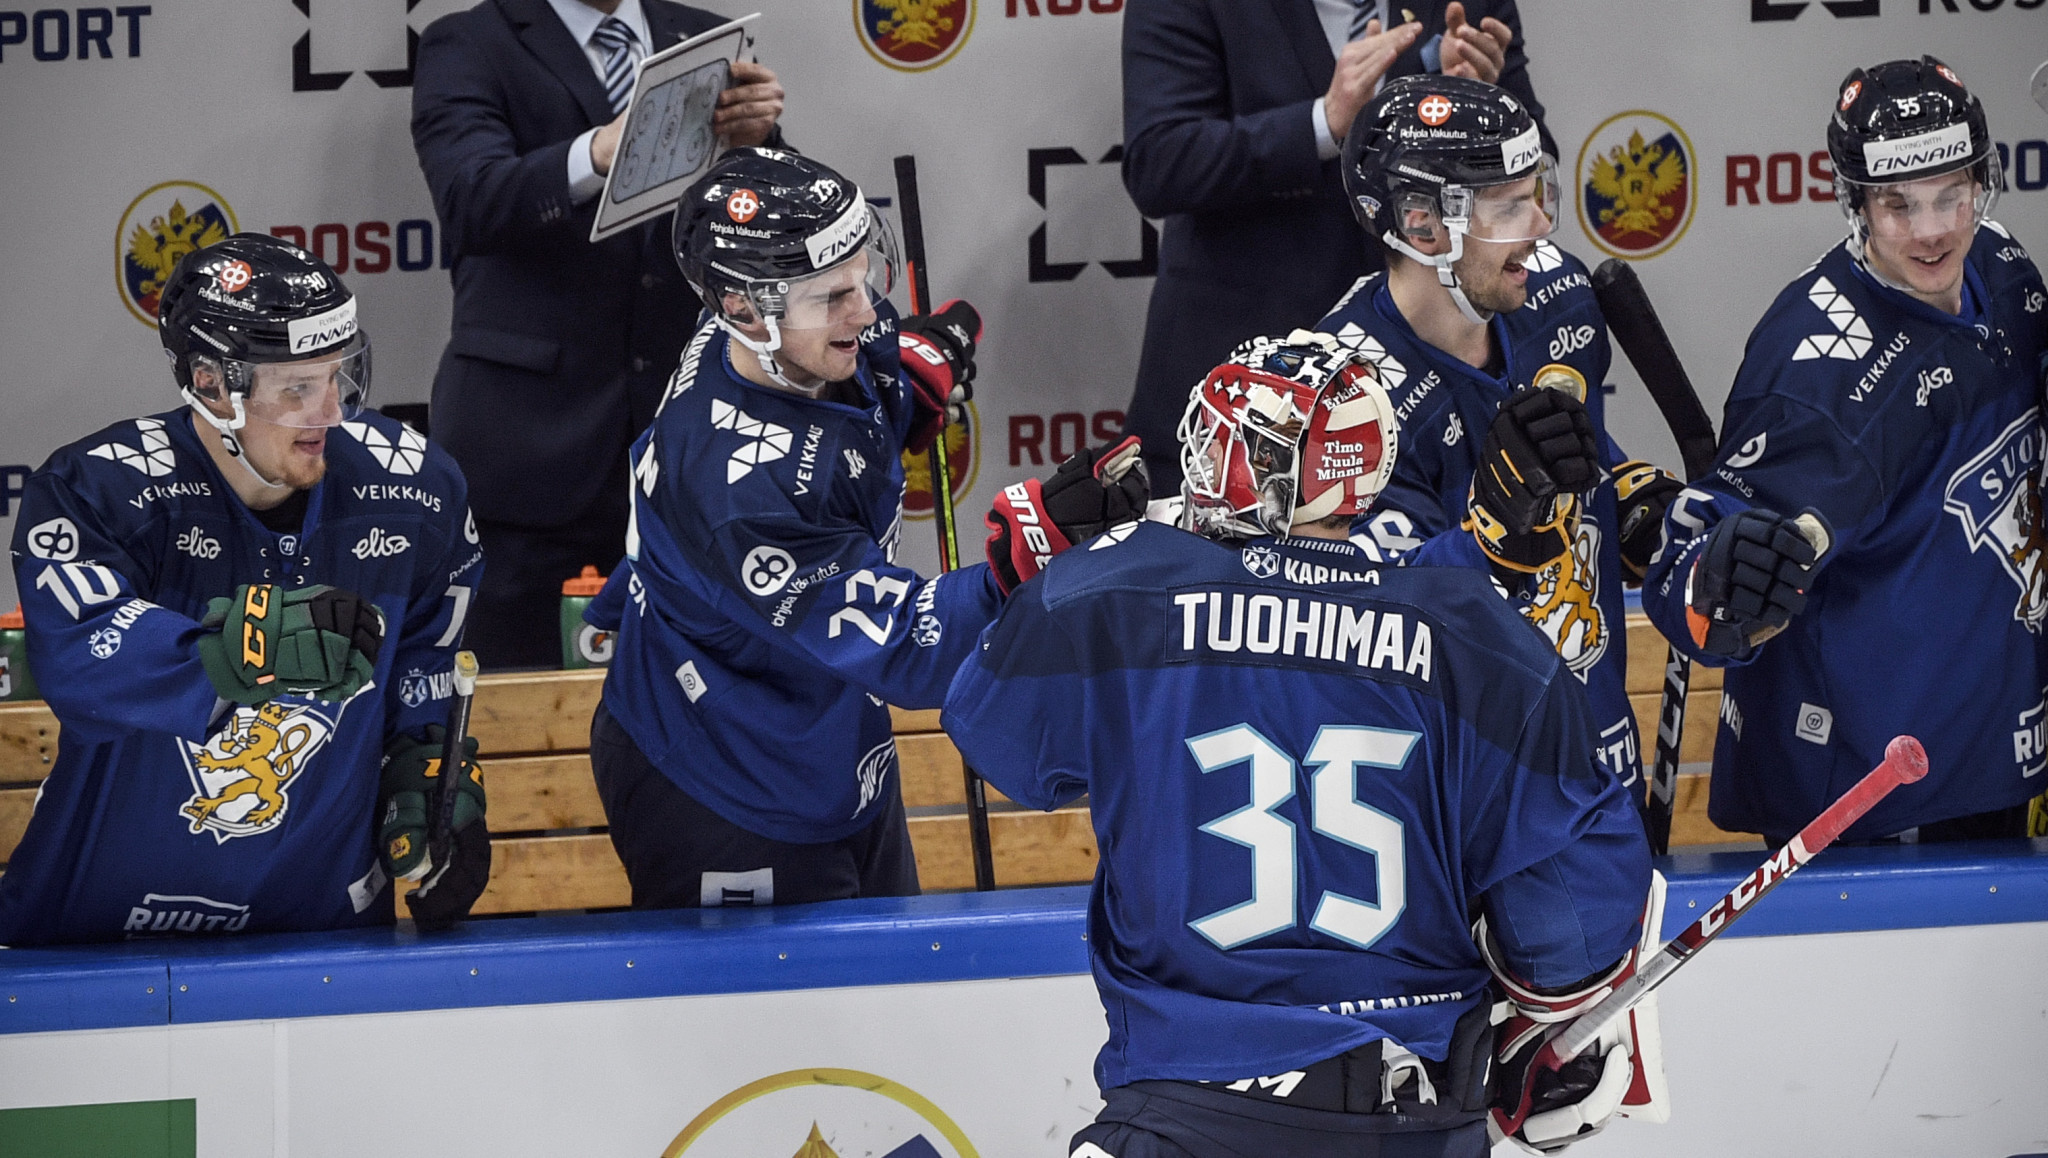 Discovery will retain exclusive rights for Finland's women and men's ice hockey matches at Beijing 2022 ©Getty Images